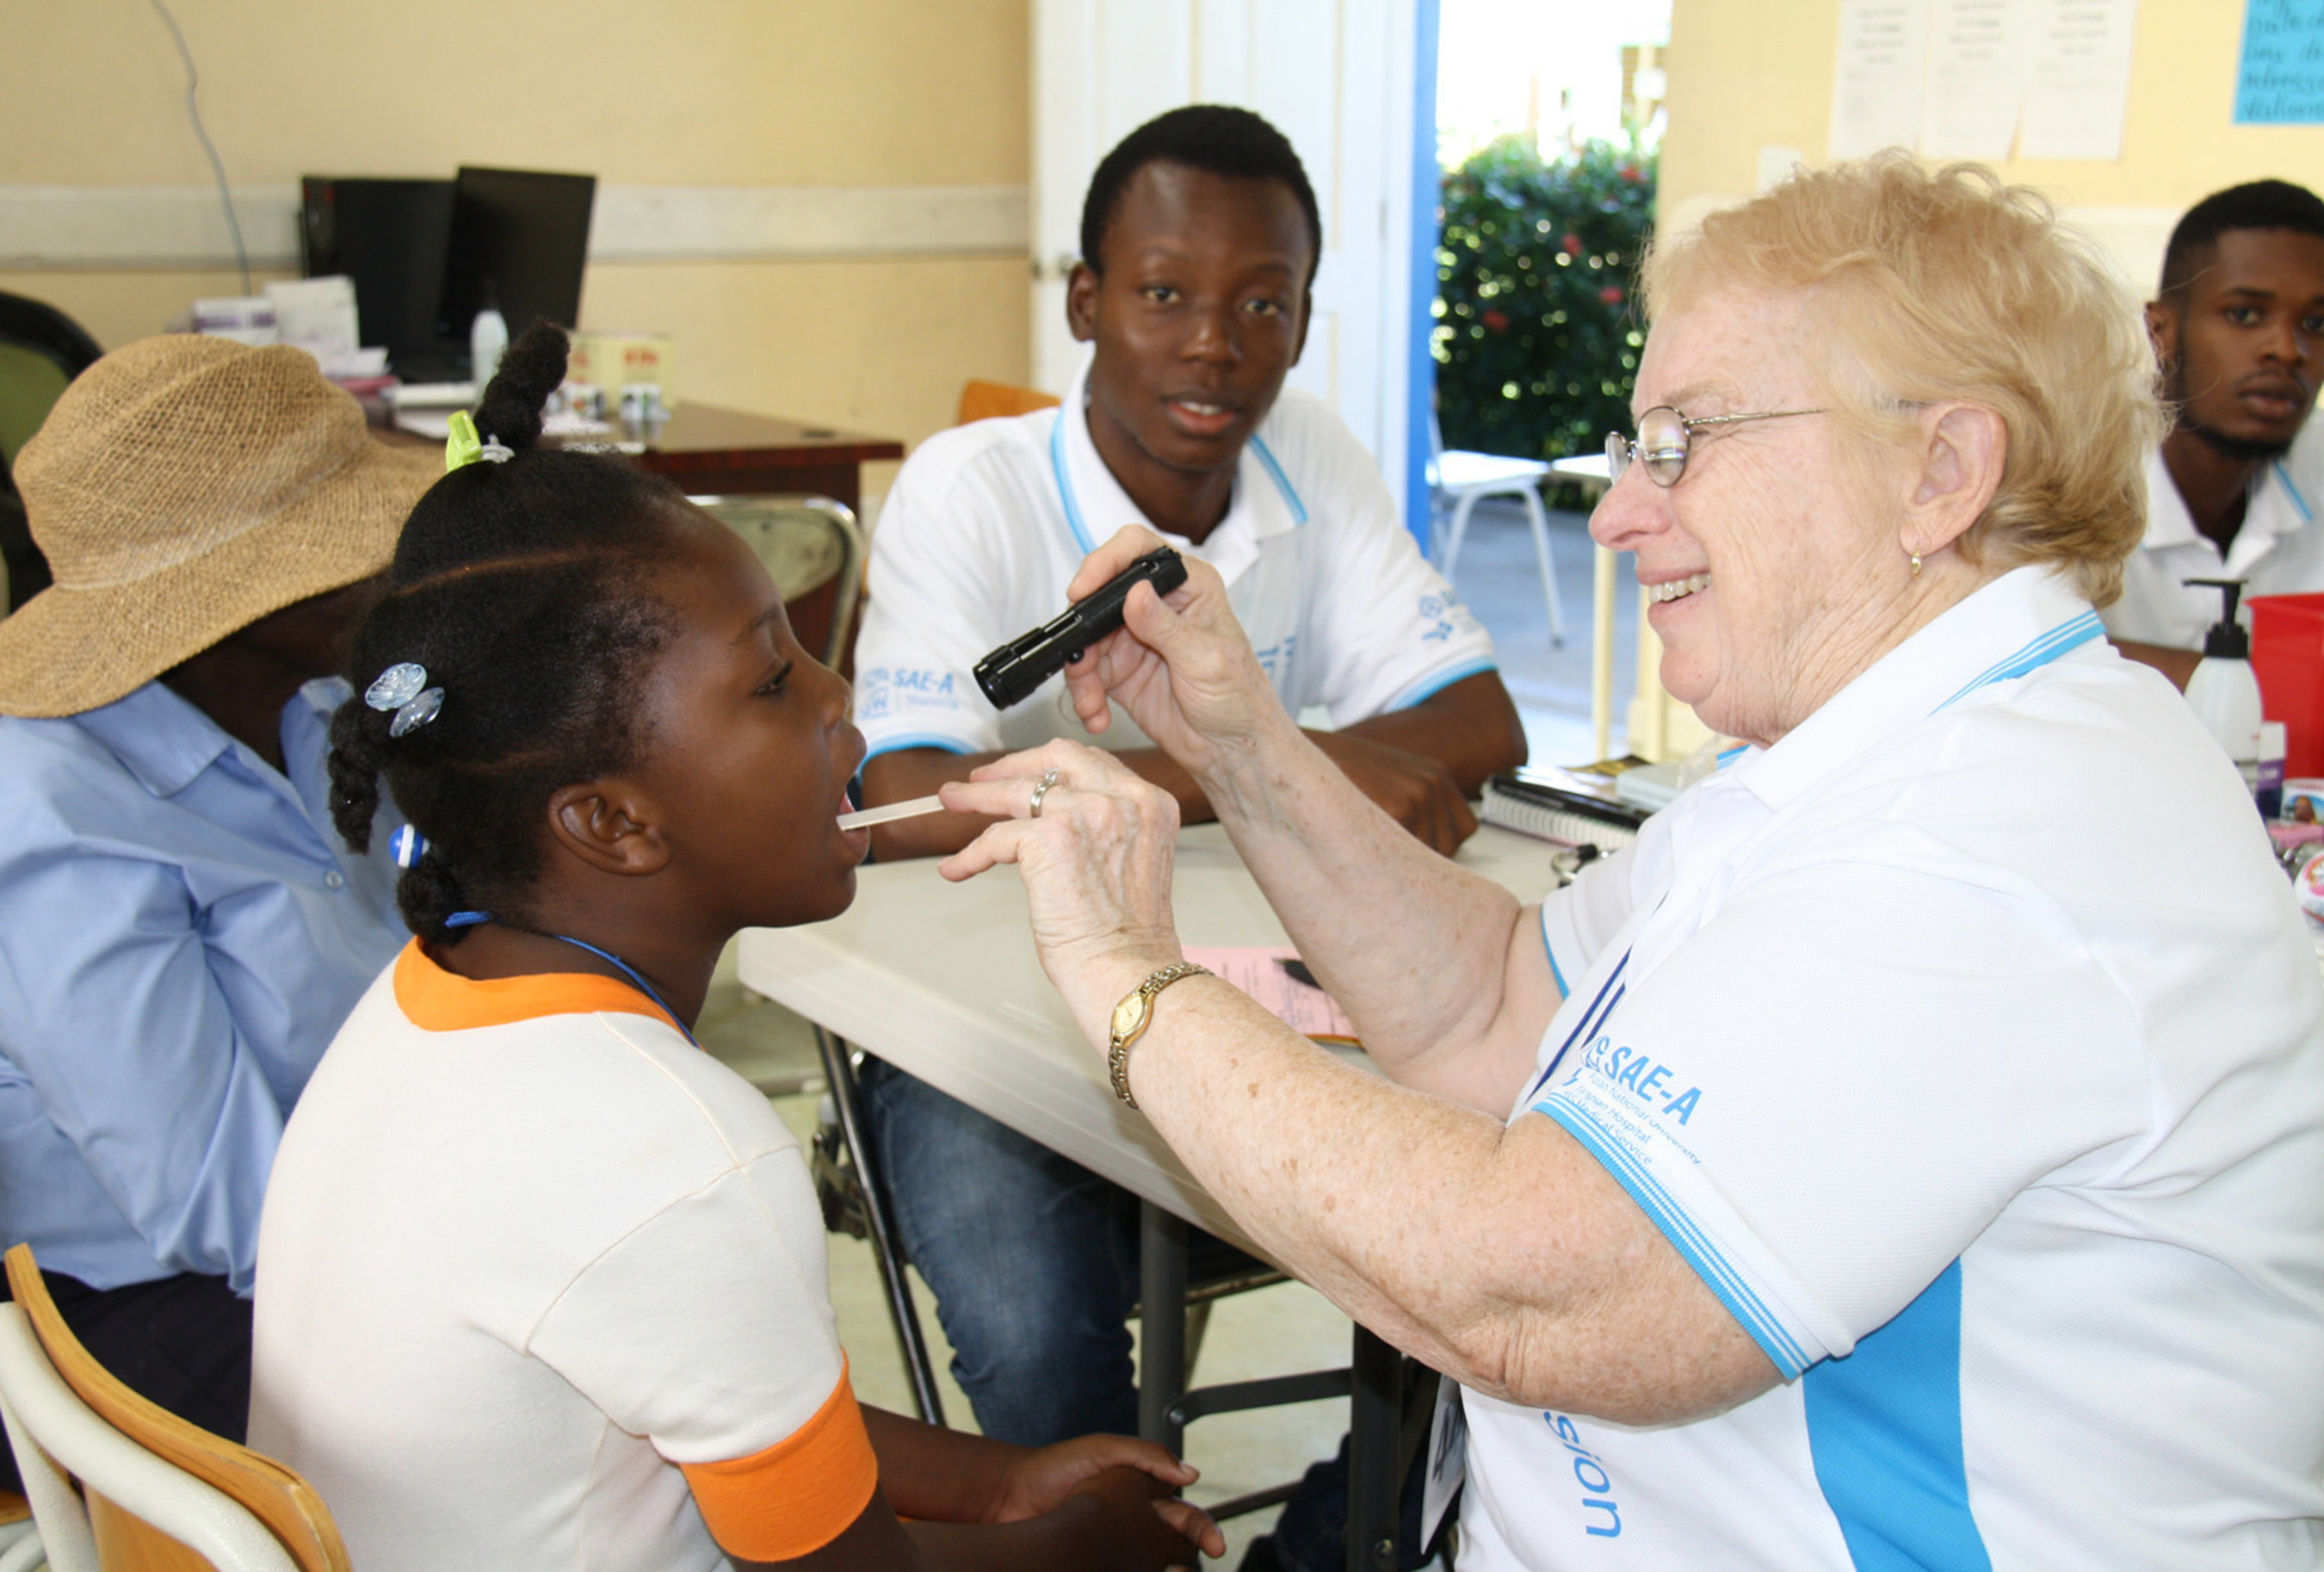 A medical team from the George Washington University School of Nursing, the U.S., is providing medical check-ups during Sae-A Trading's 4th medical mission in Haiti.